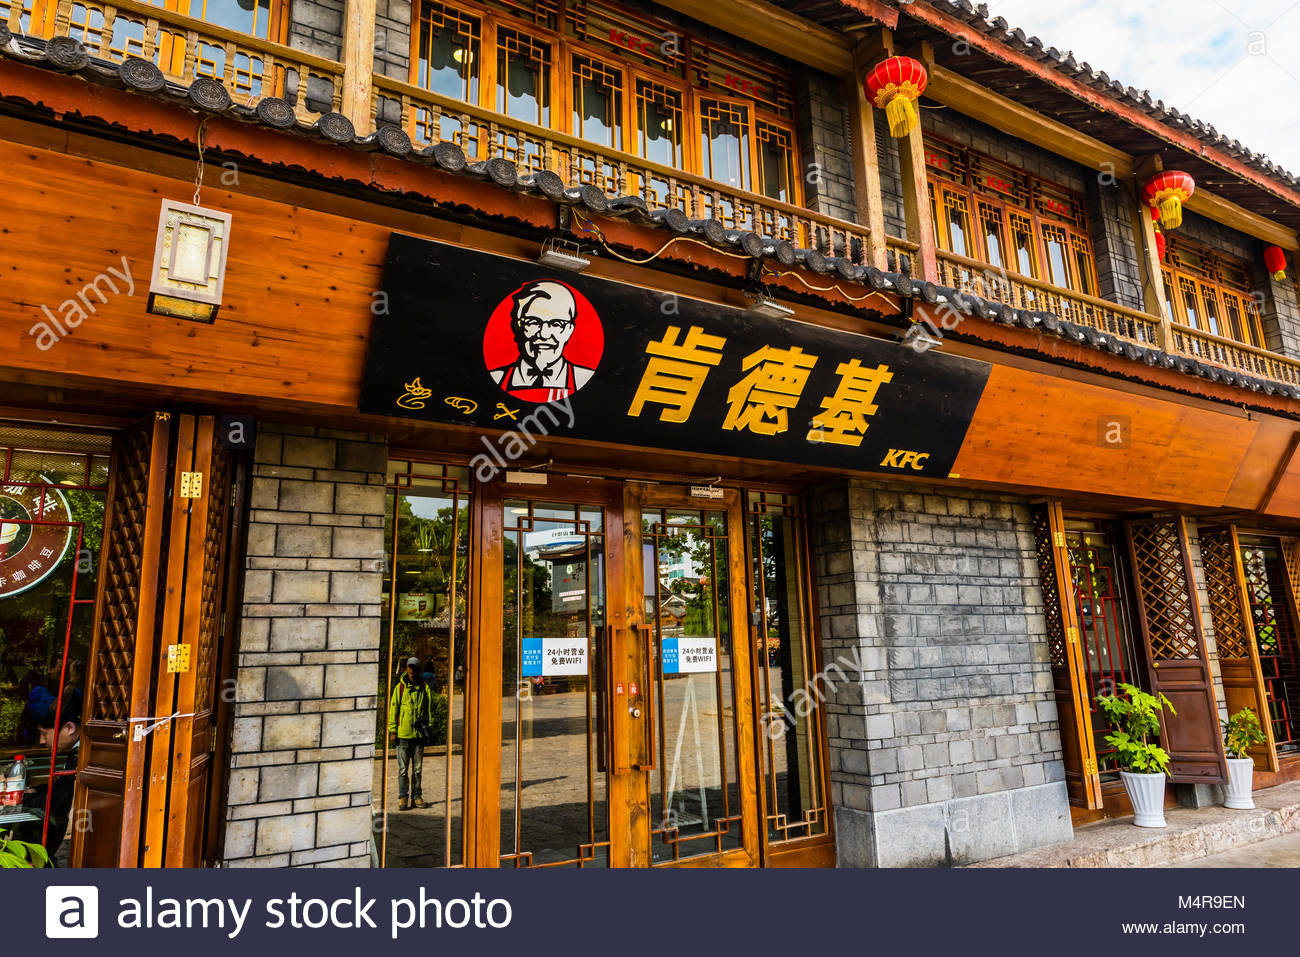 KFC (Kentucky Fried Chicken) restaurant, The Old Town (Dayan) of Lijiang, Yunnan Province, China. The Old Town is - Stock Image